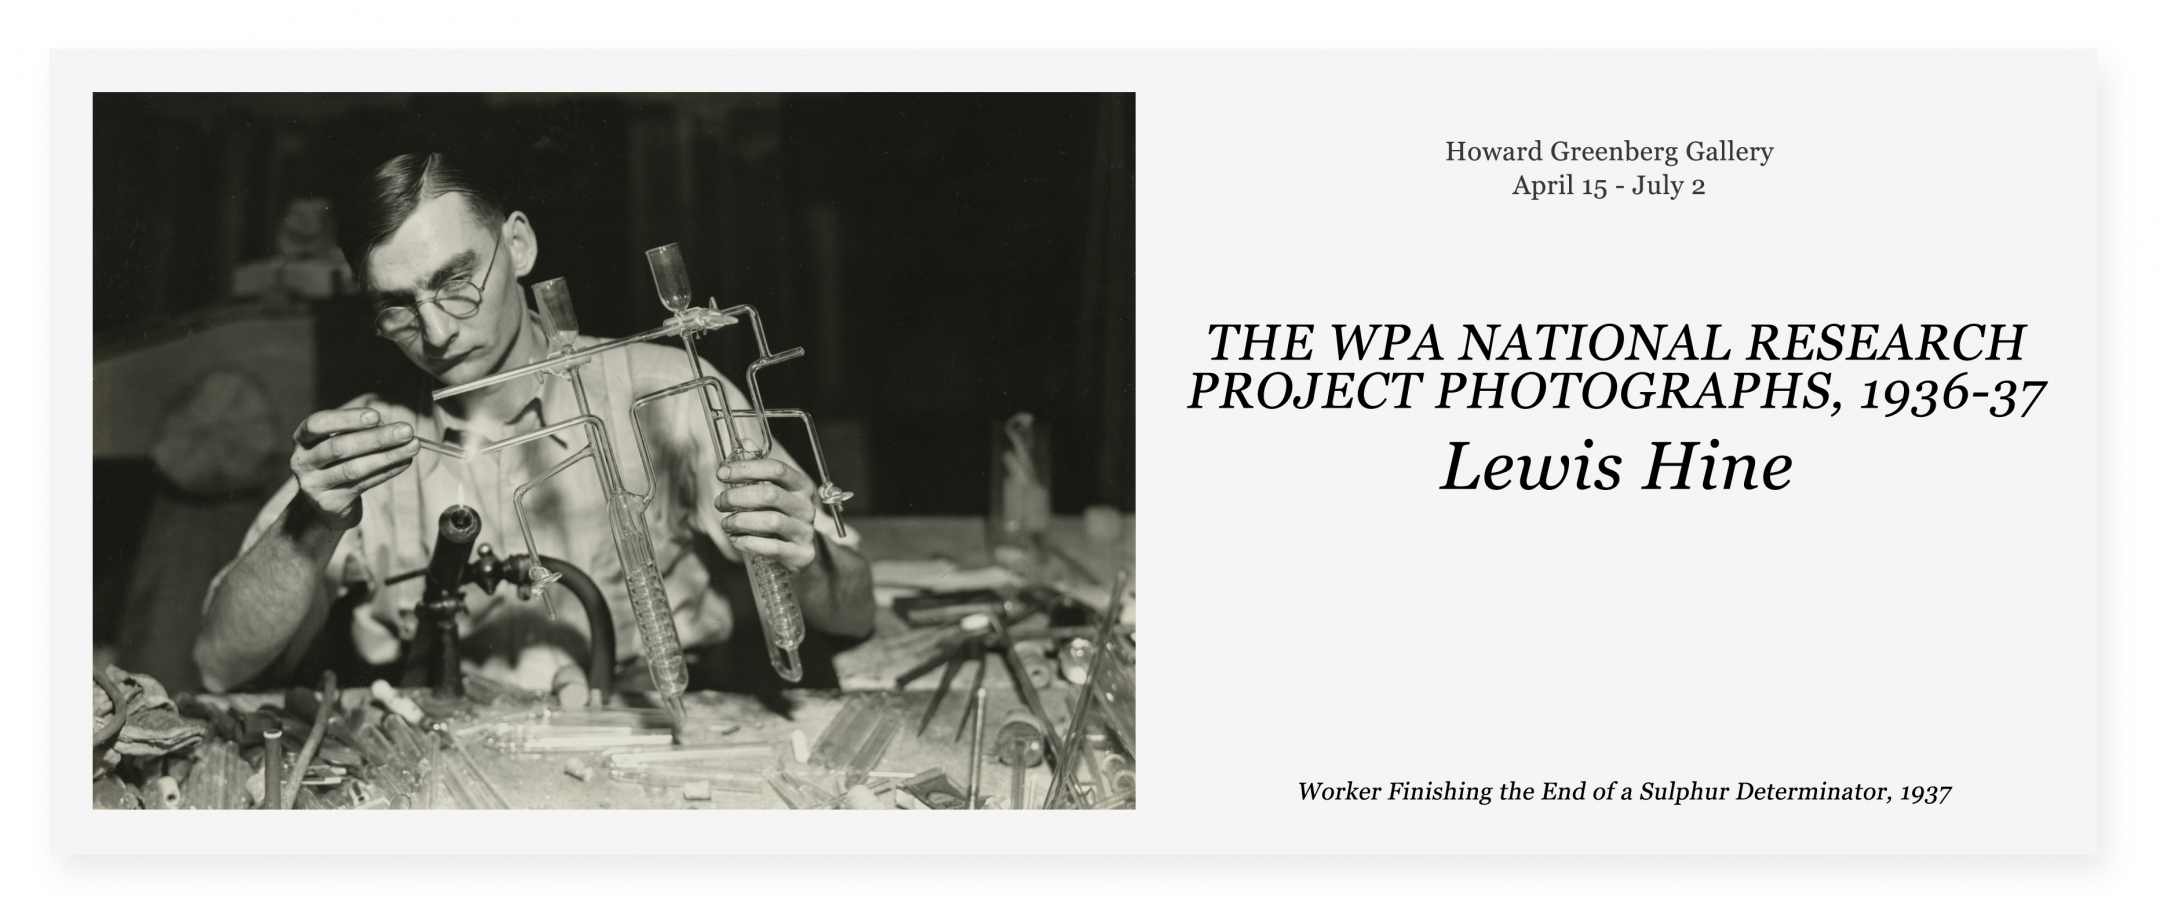 lewis hine, the wpa national research project photographs, 1936-37, april 15 - july 2, howard greenberg gallery, 2021